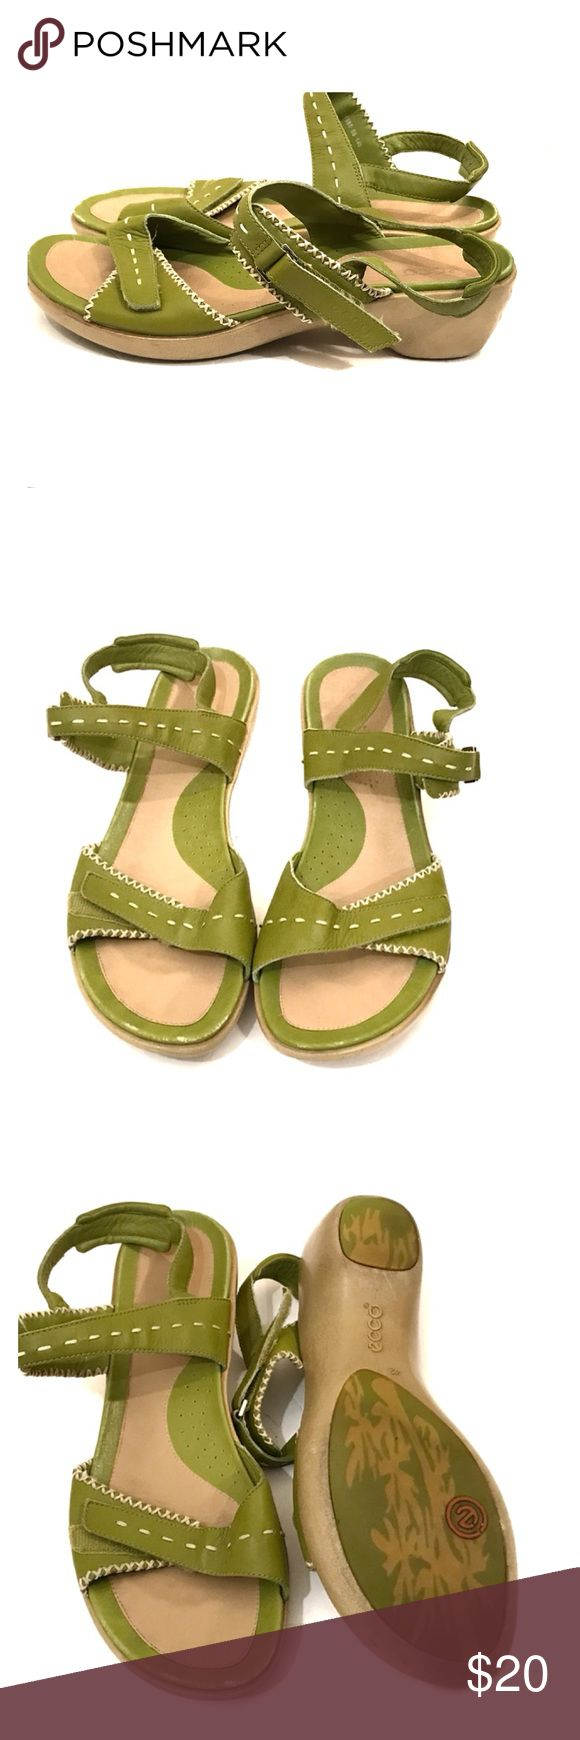 Ecco sandals in spring green size 42 Ecco sandals in spring green size 42 (11-11.5) Preciously loved and has some scuffs but lots of life left. Velcro closure at top of foot and ankle. Ecco Shoes Sandals